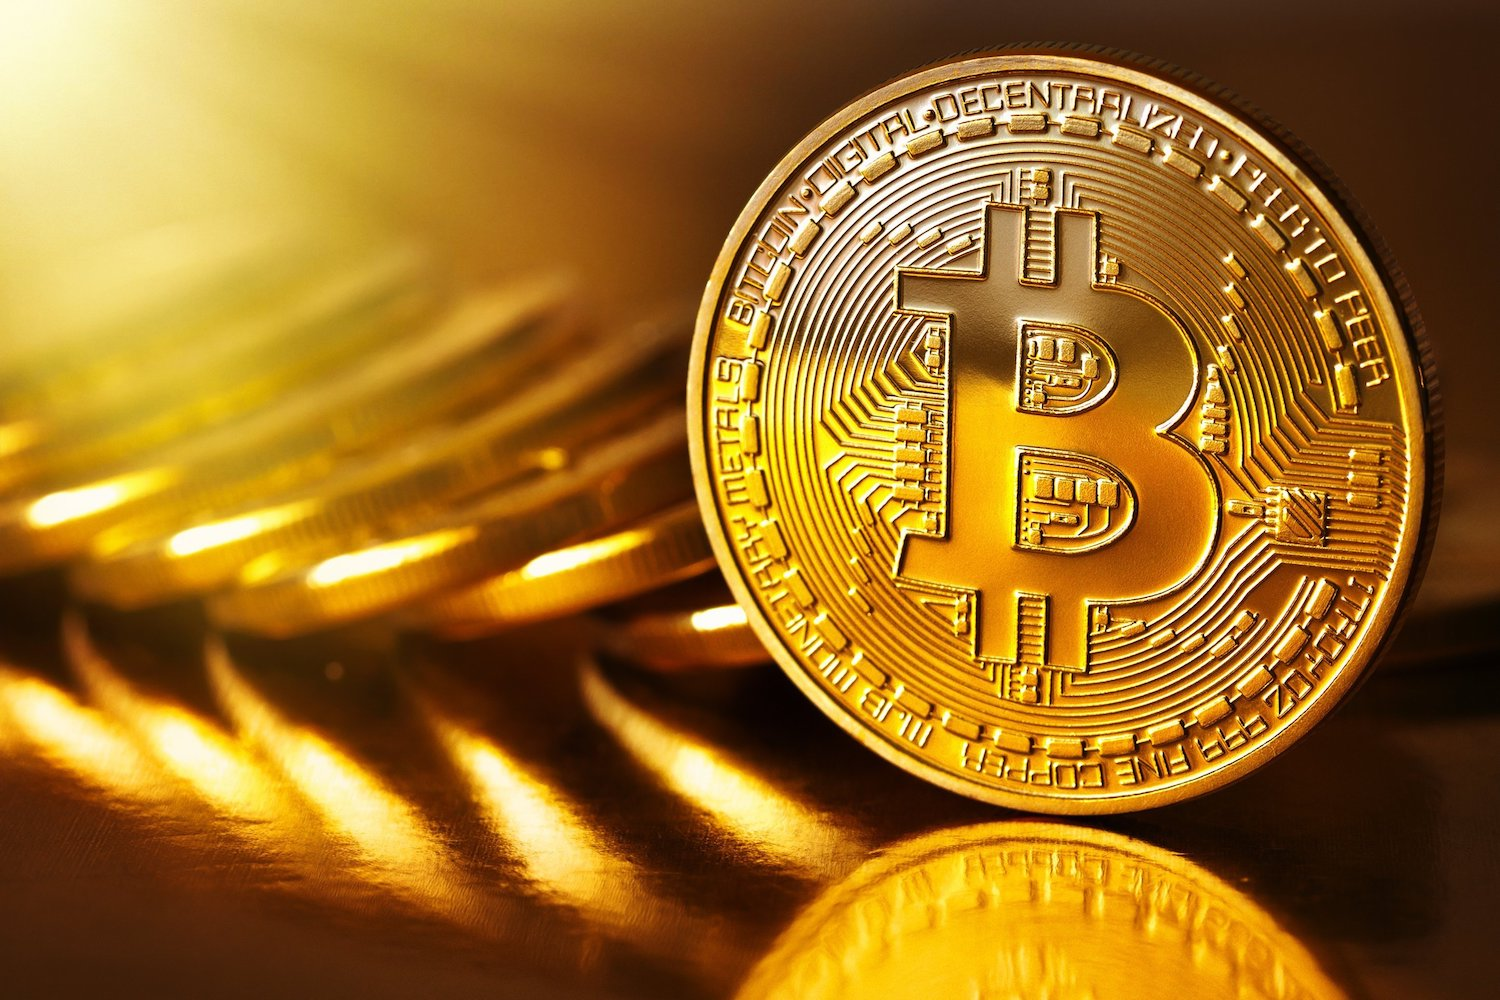 btc traders investment limited)